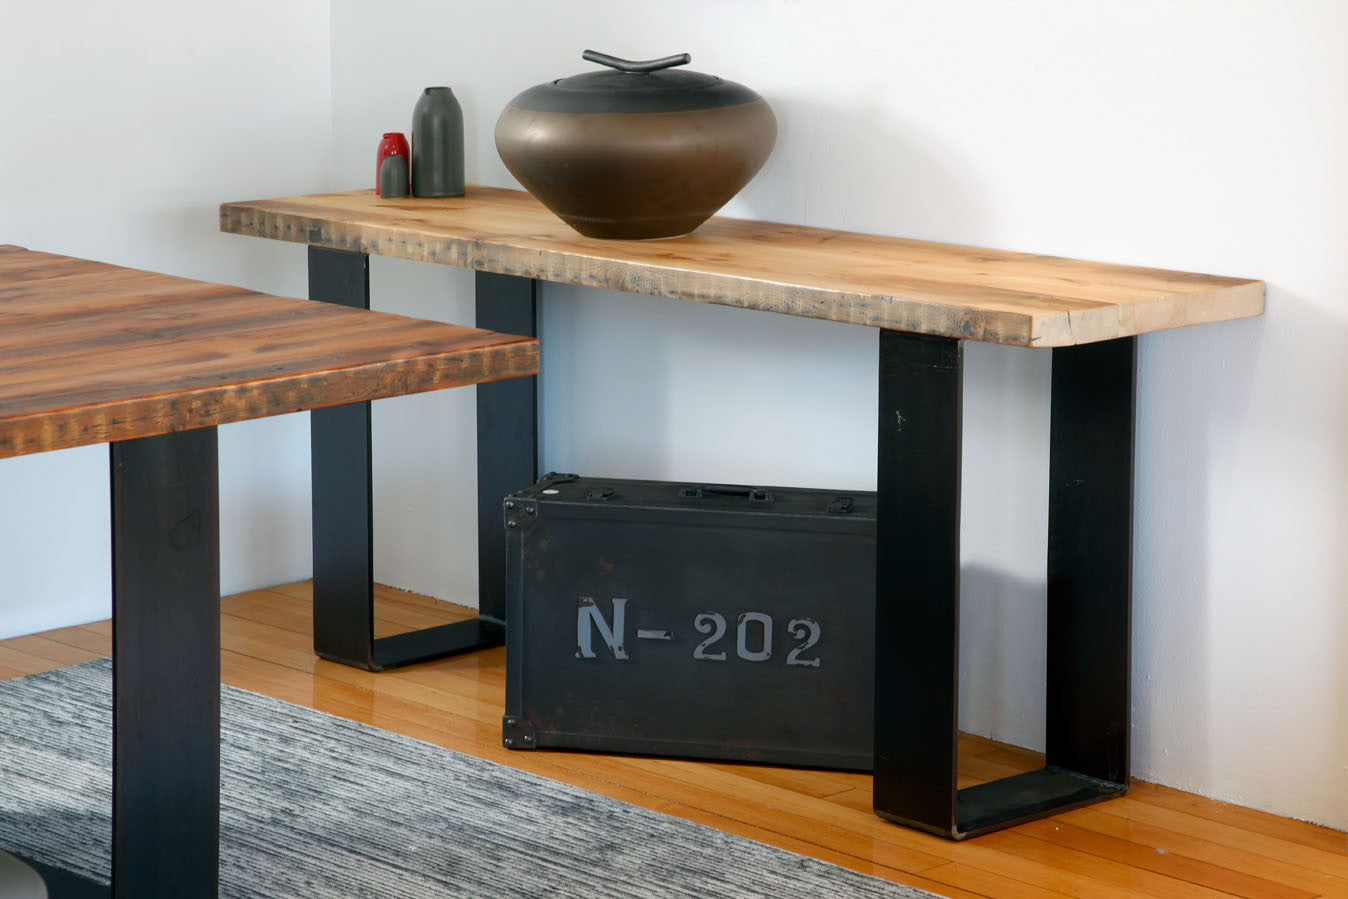 Recycled Baltic Timber Dining Tables with Steel Base  : MG3180 from bespokefurnitureperth.com.au size 1348 x 899 jpeg 124kB